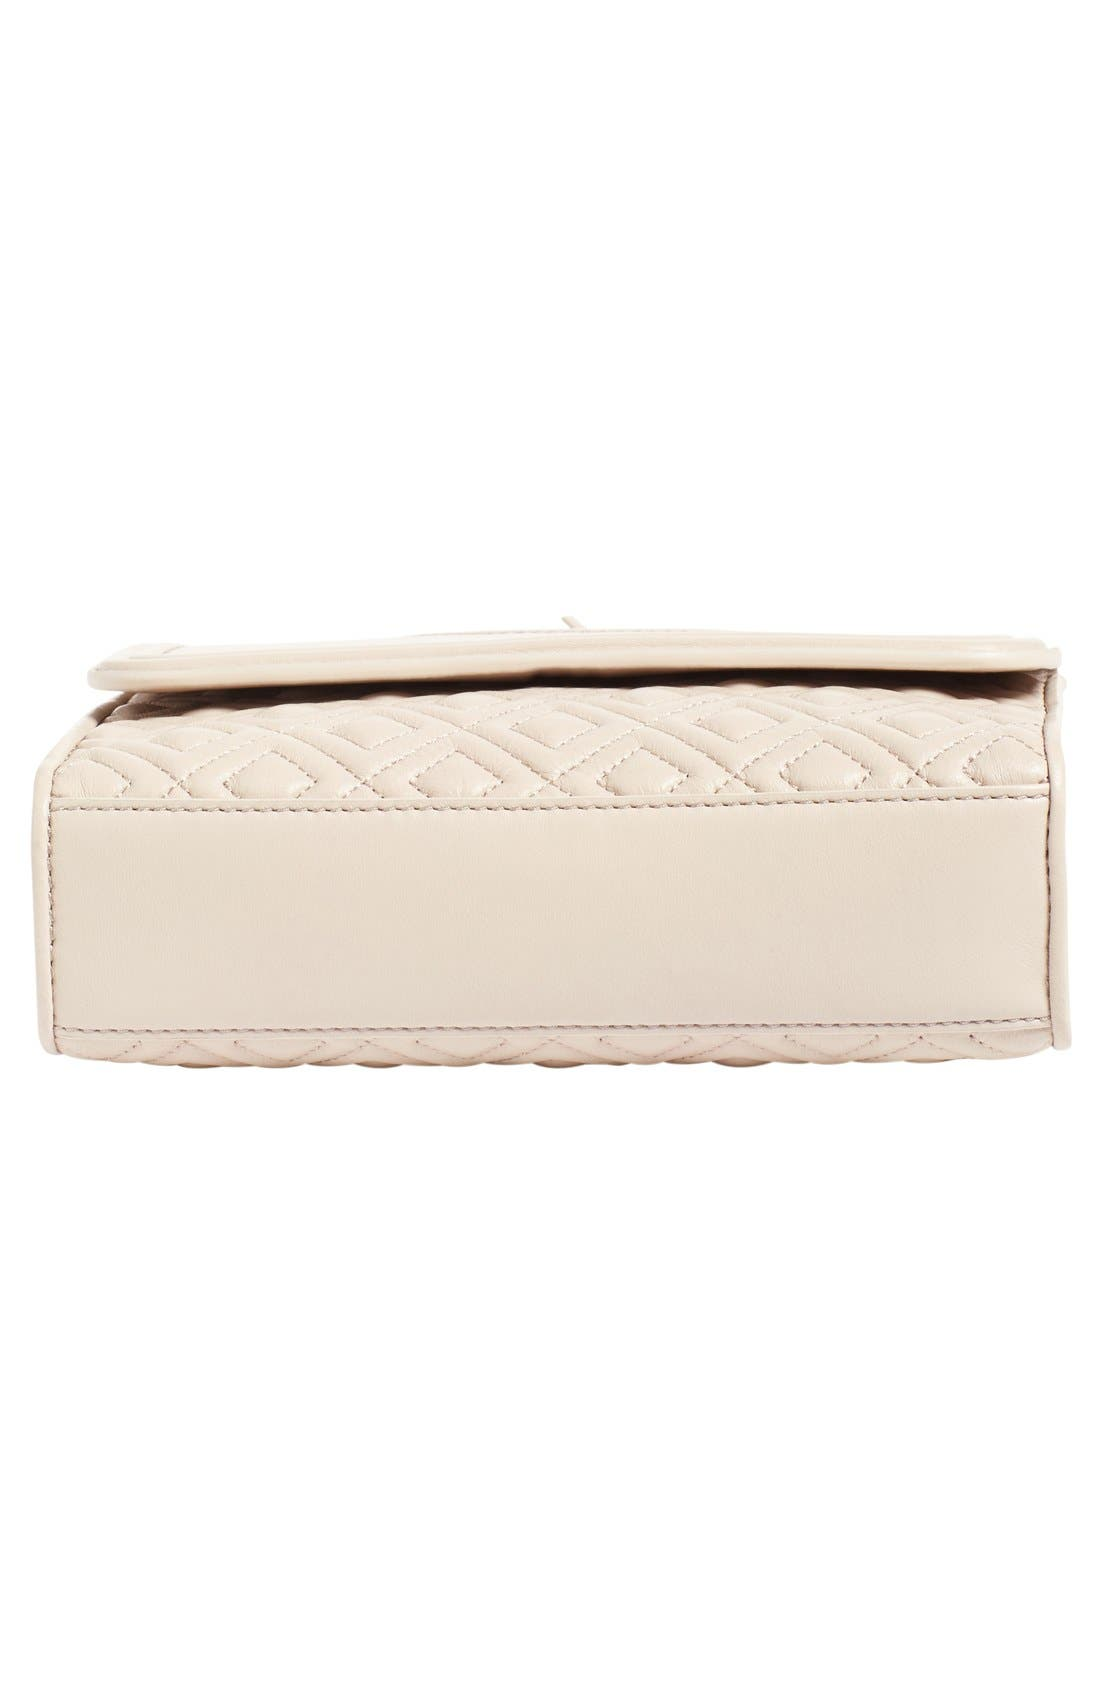 'Small Fleming' Quilted Leather Shoulder Bag,                             Alternate thumbnail 22, color,